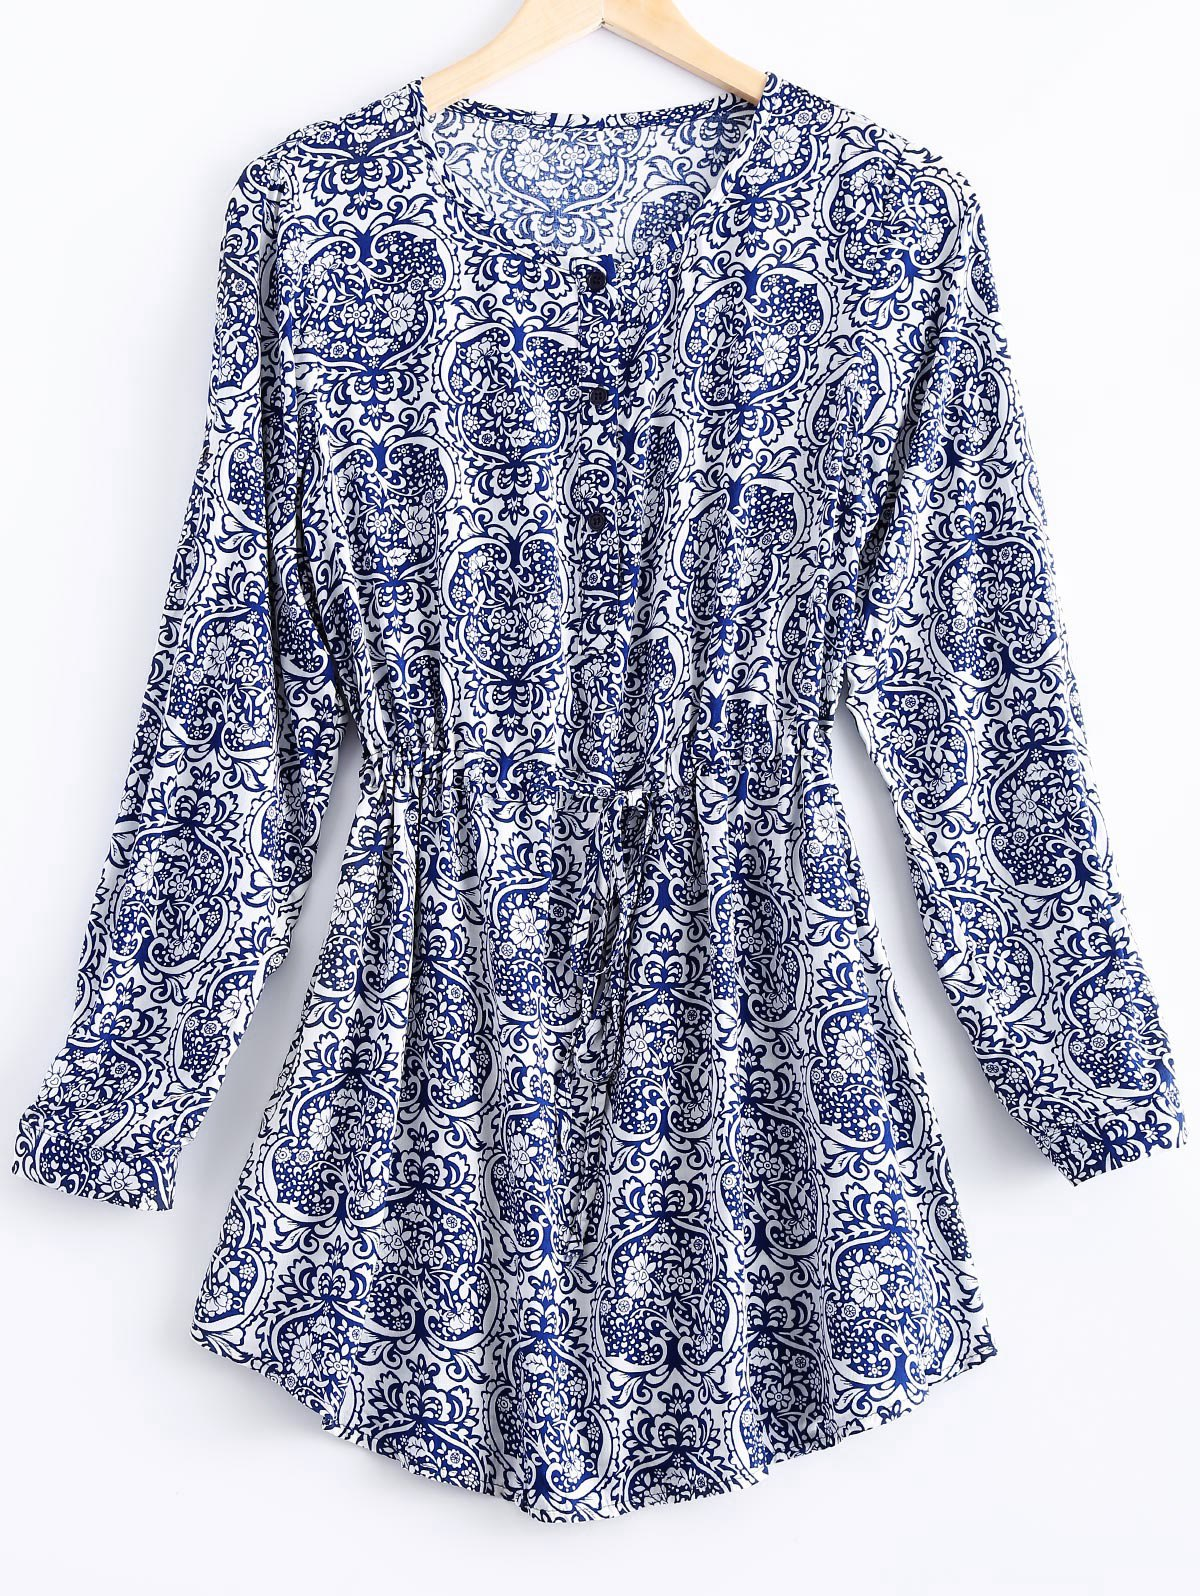 Ethnic Style Round Collar Floral Print Dress For Women